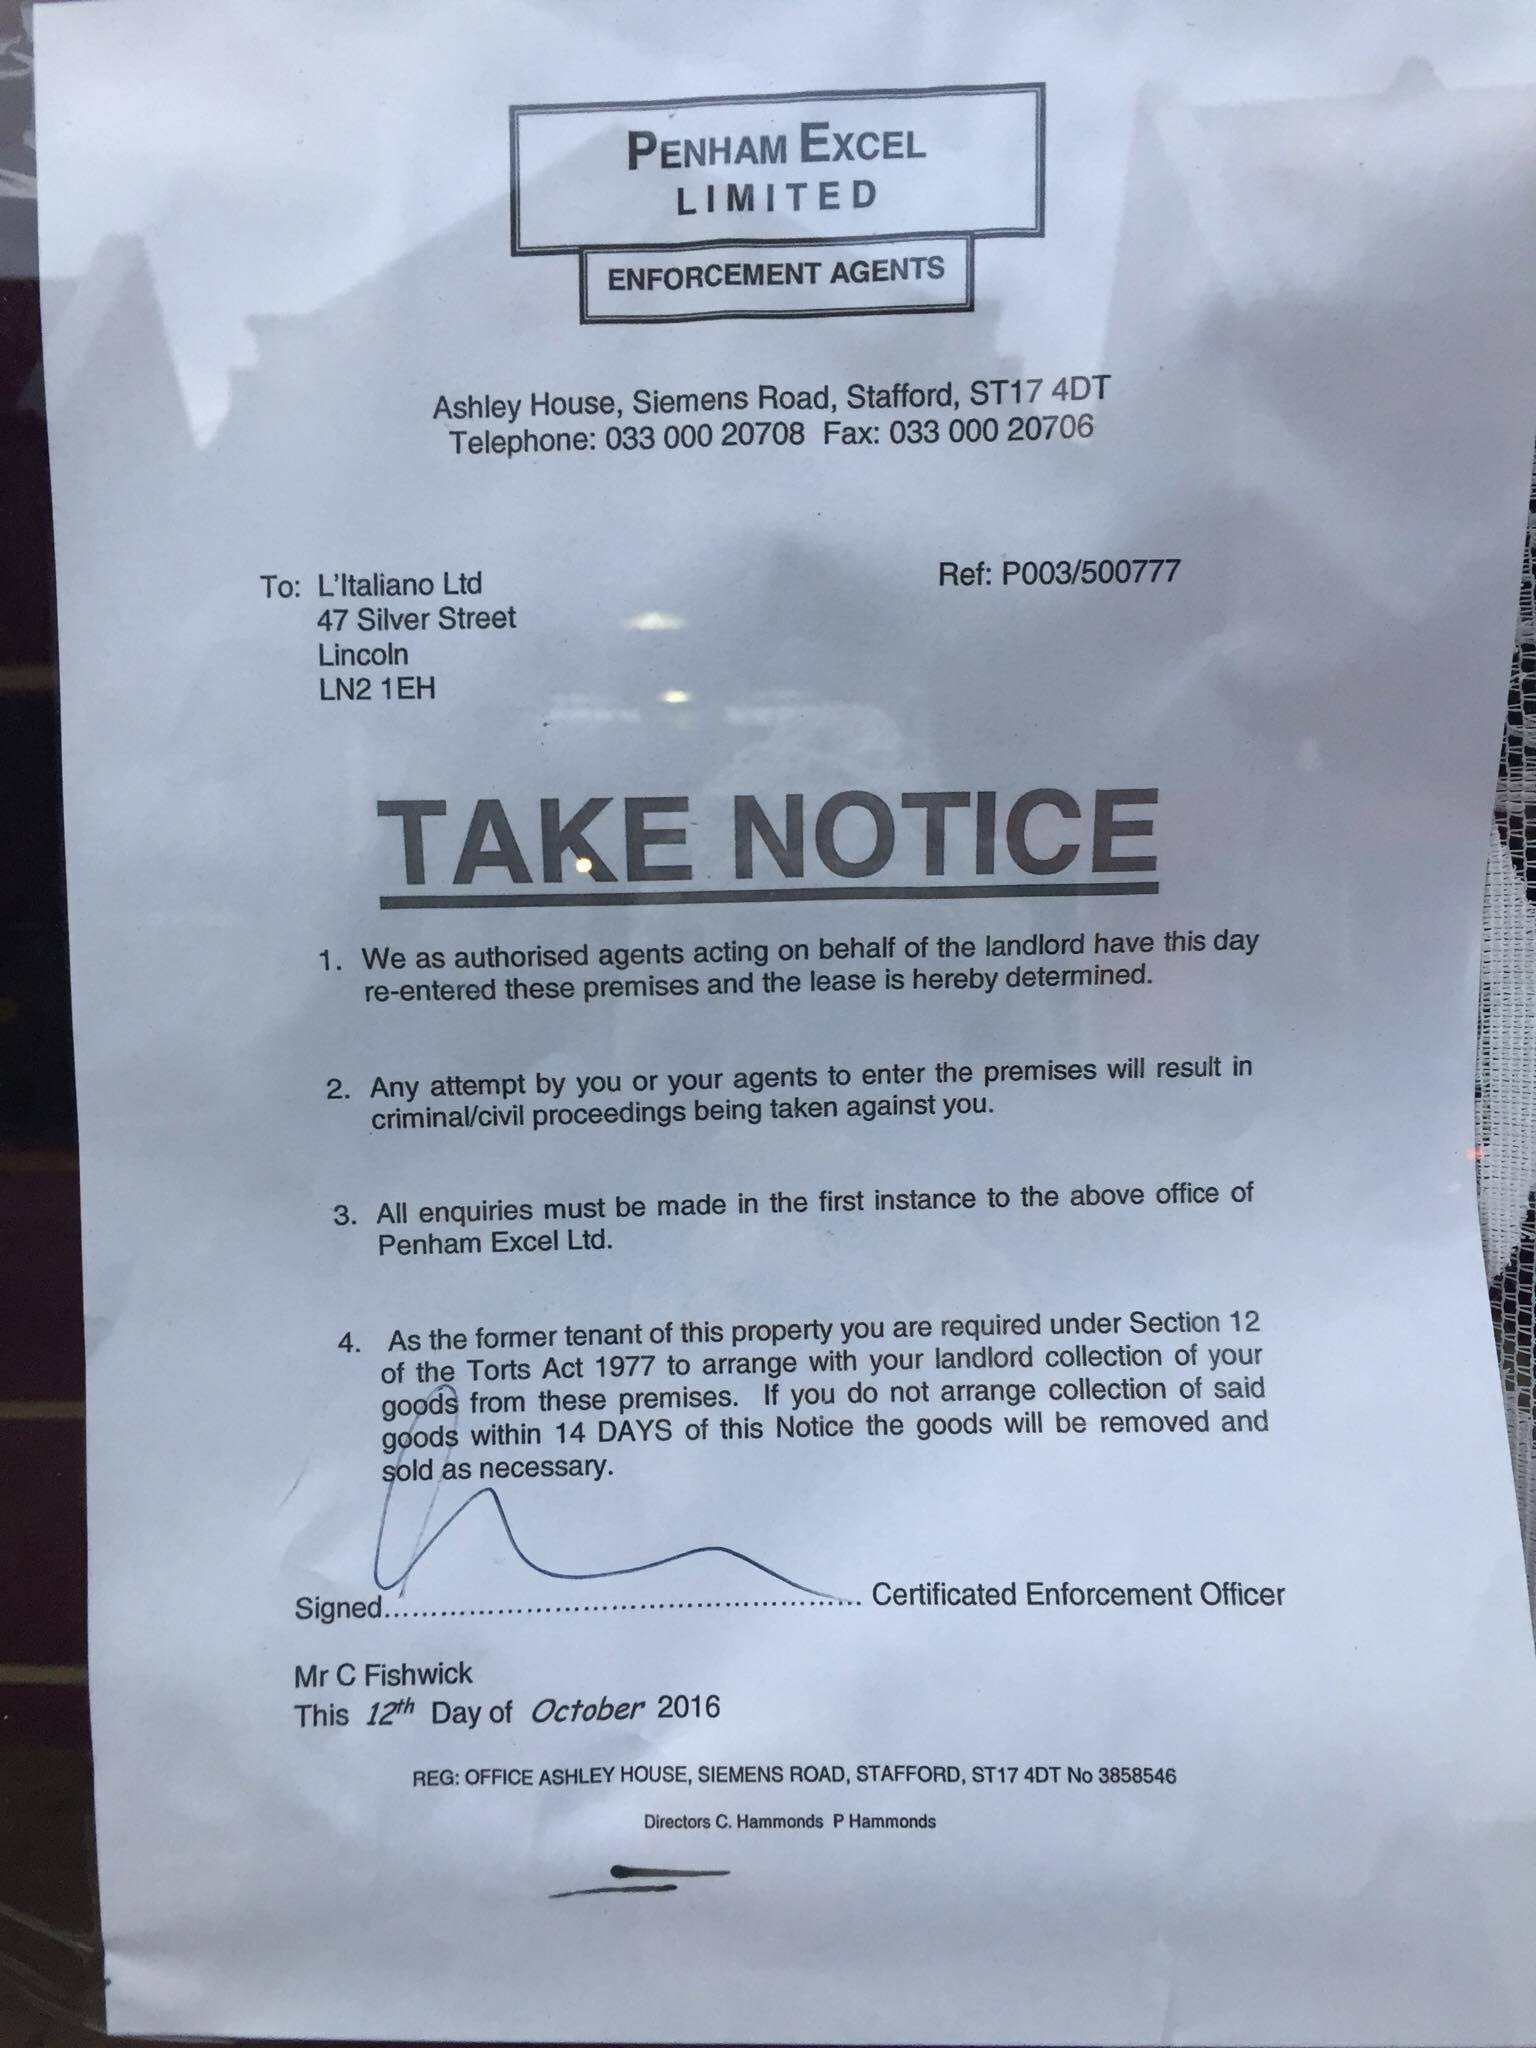 The enforcement notice was posted by bailiffs last week.